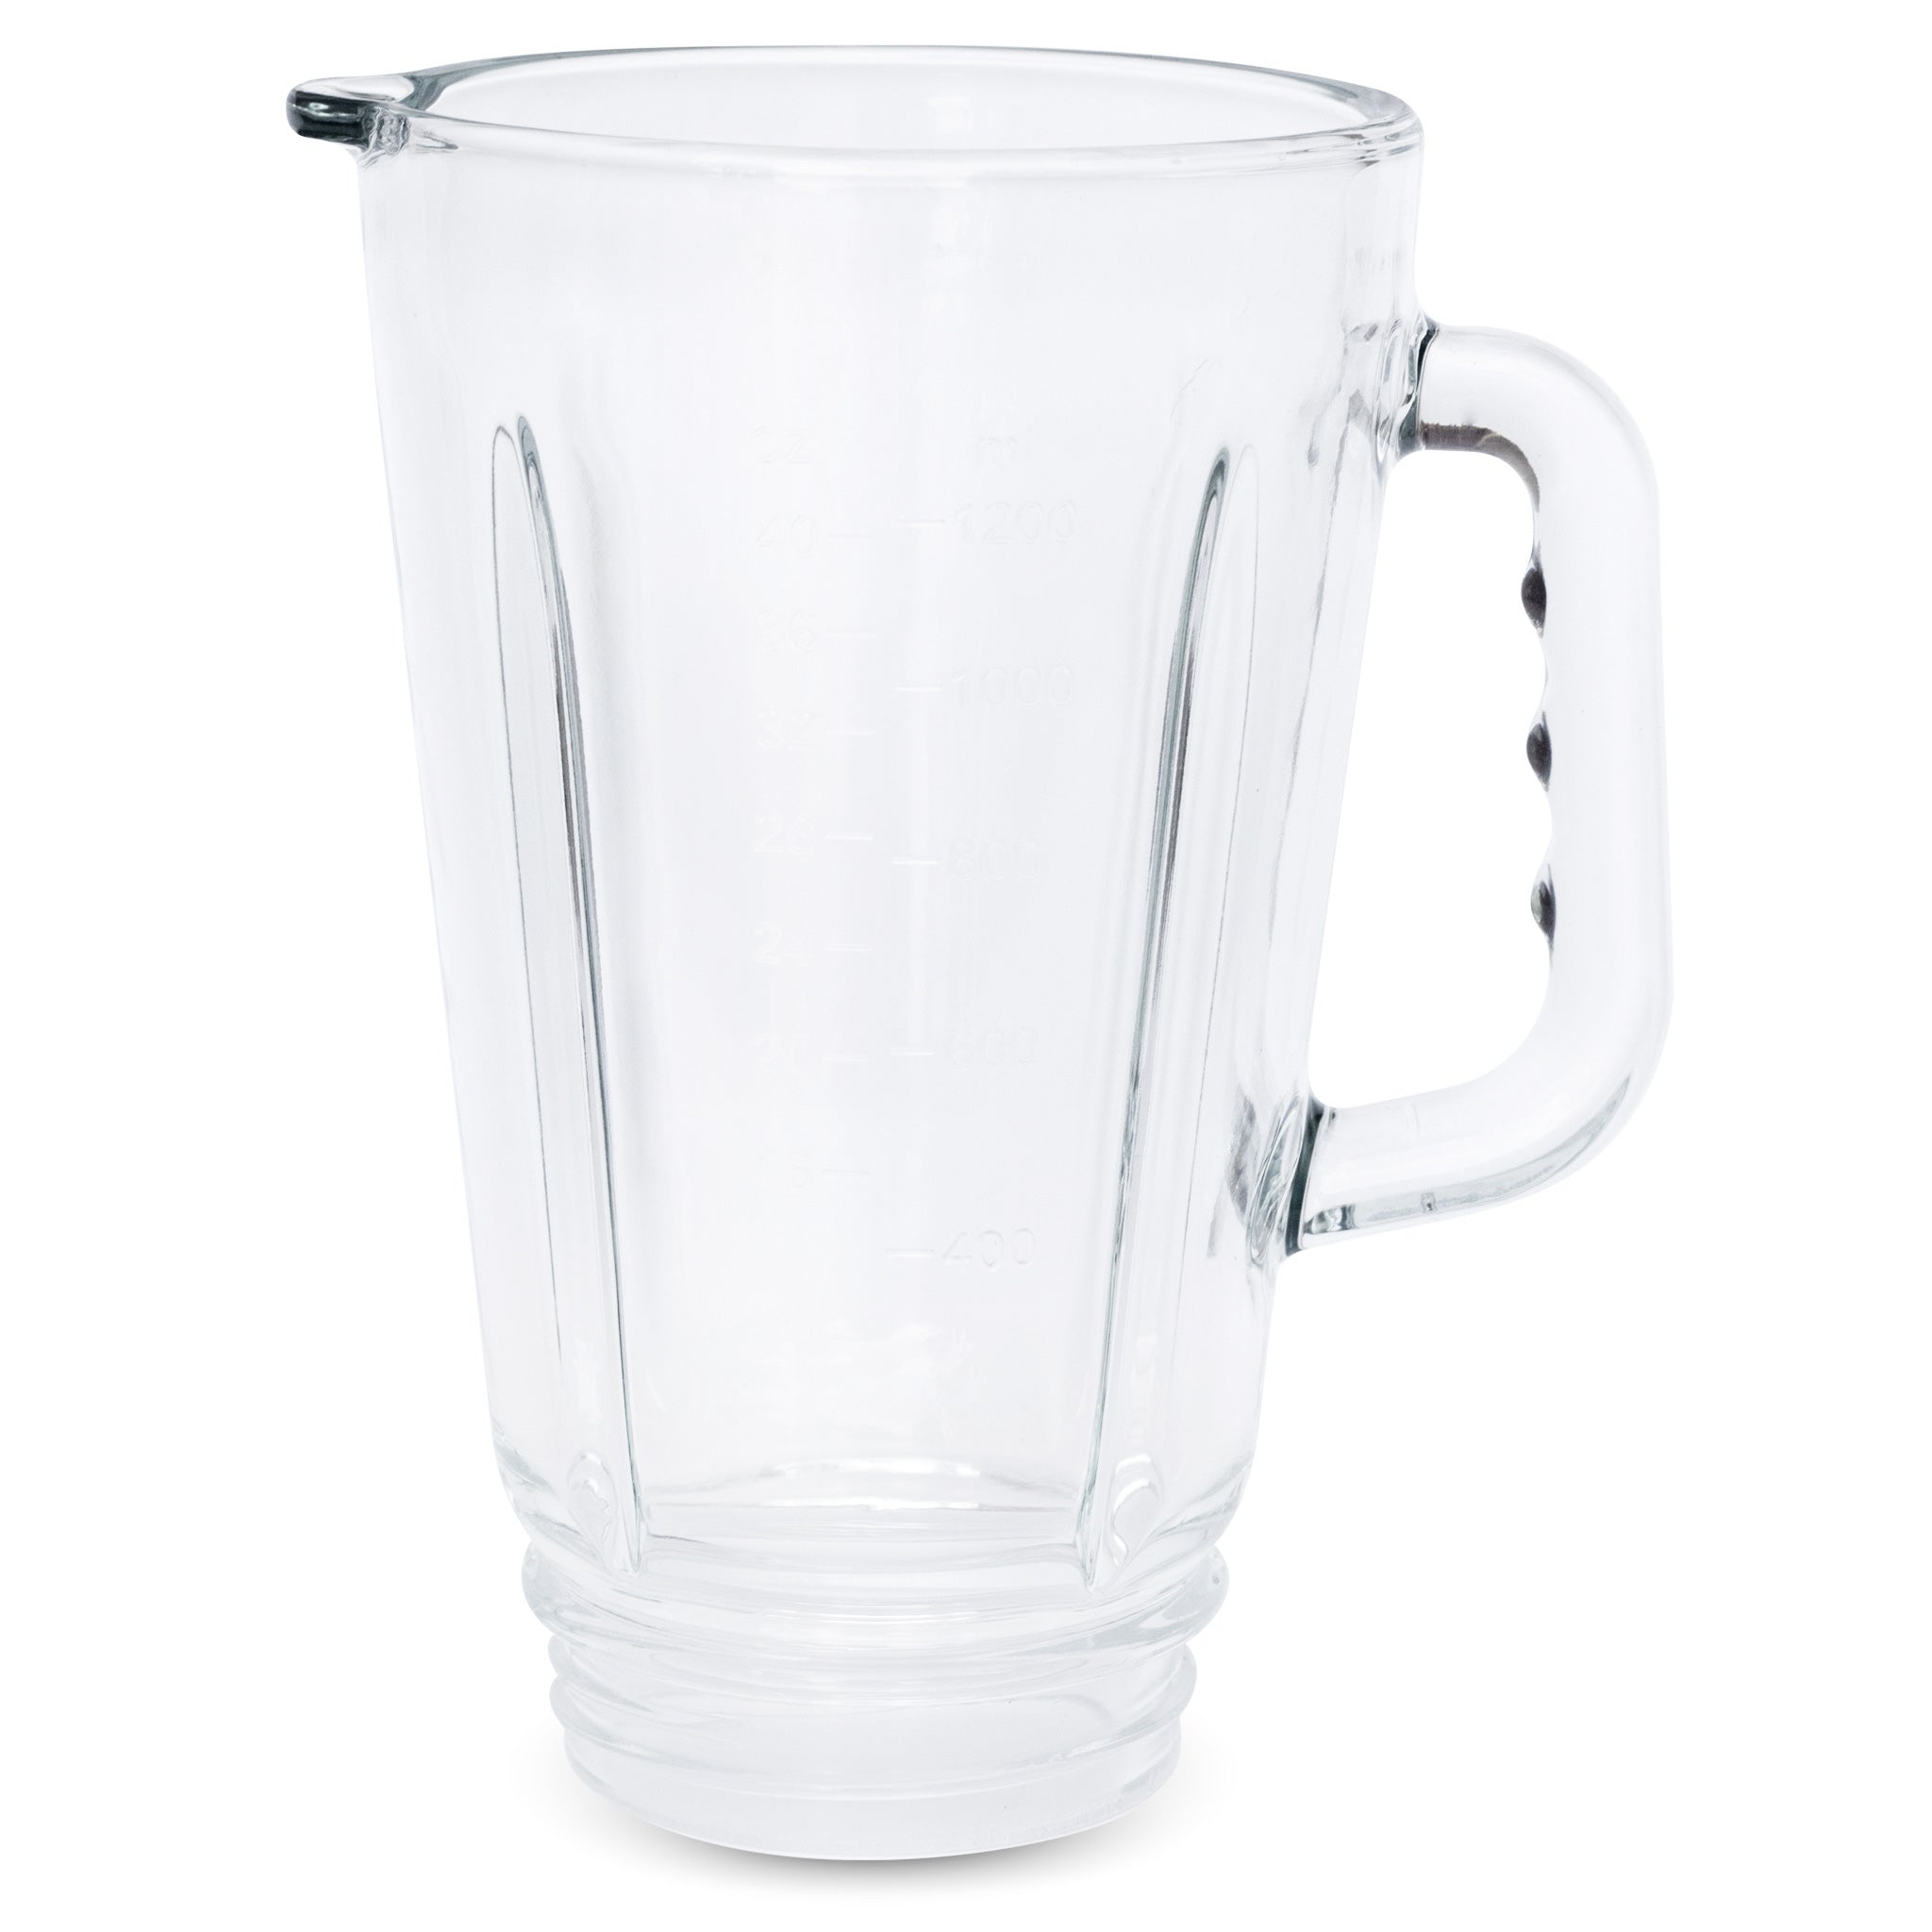 This is the 42 oz glass blending container without the vacuum lid for the Glass Personal Blender®.